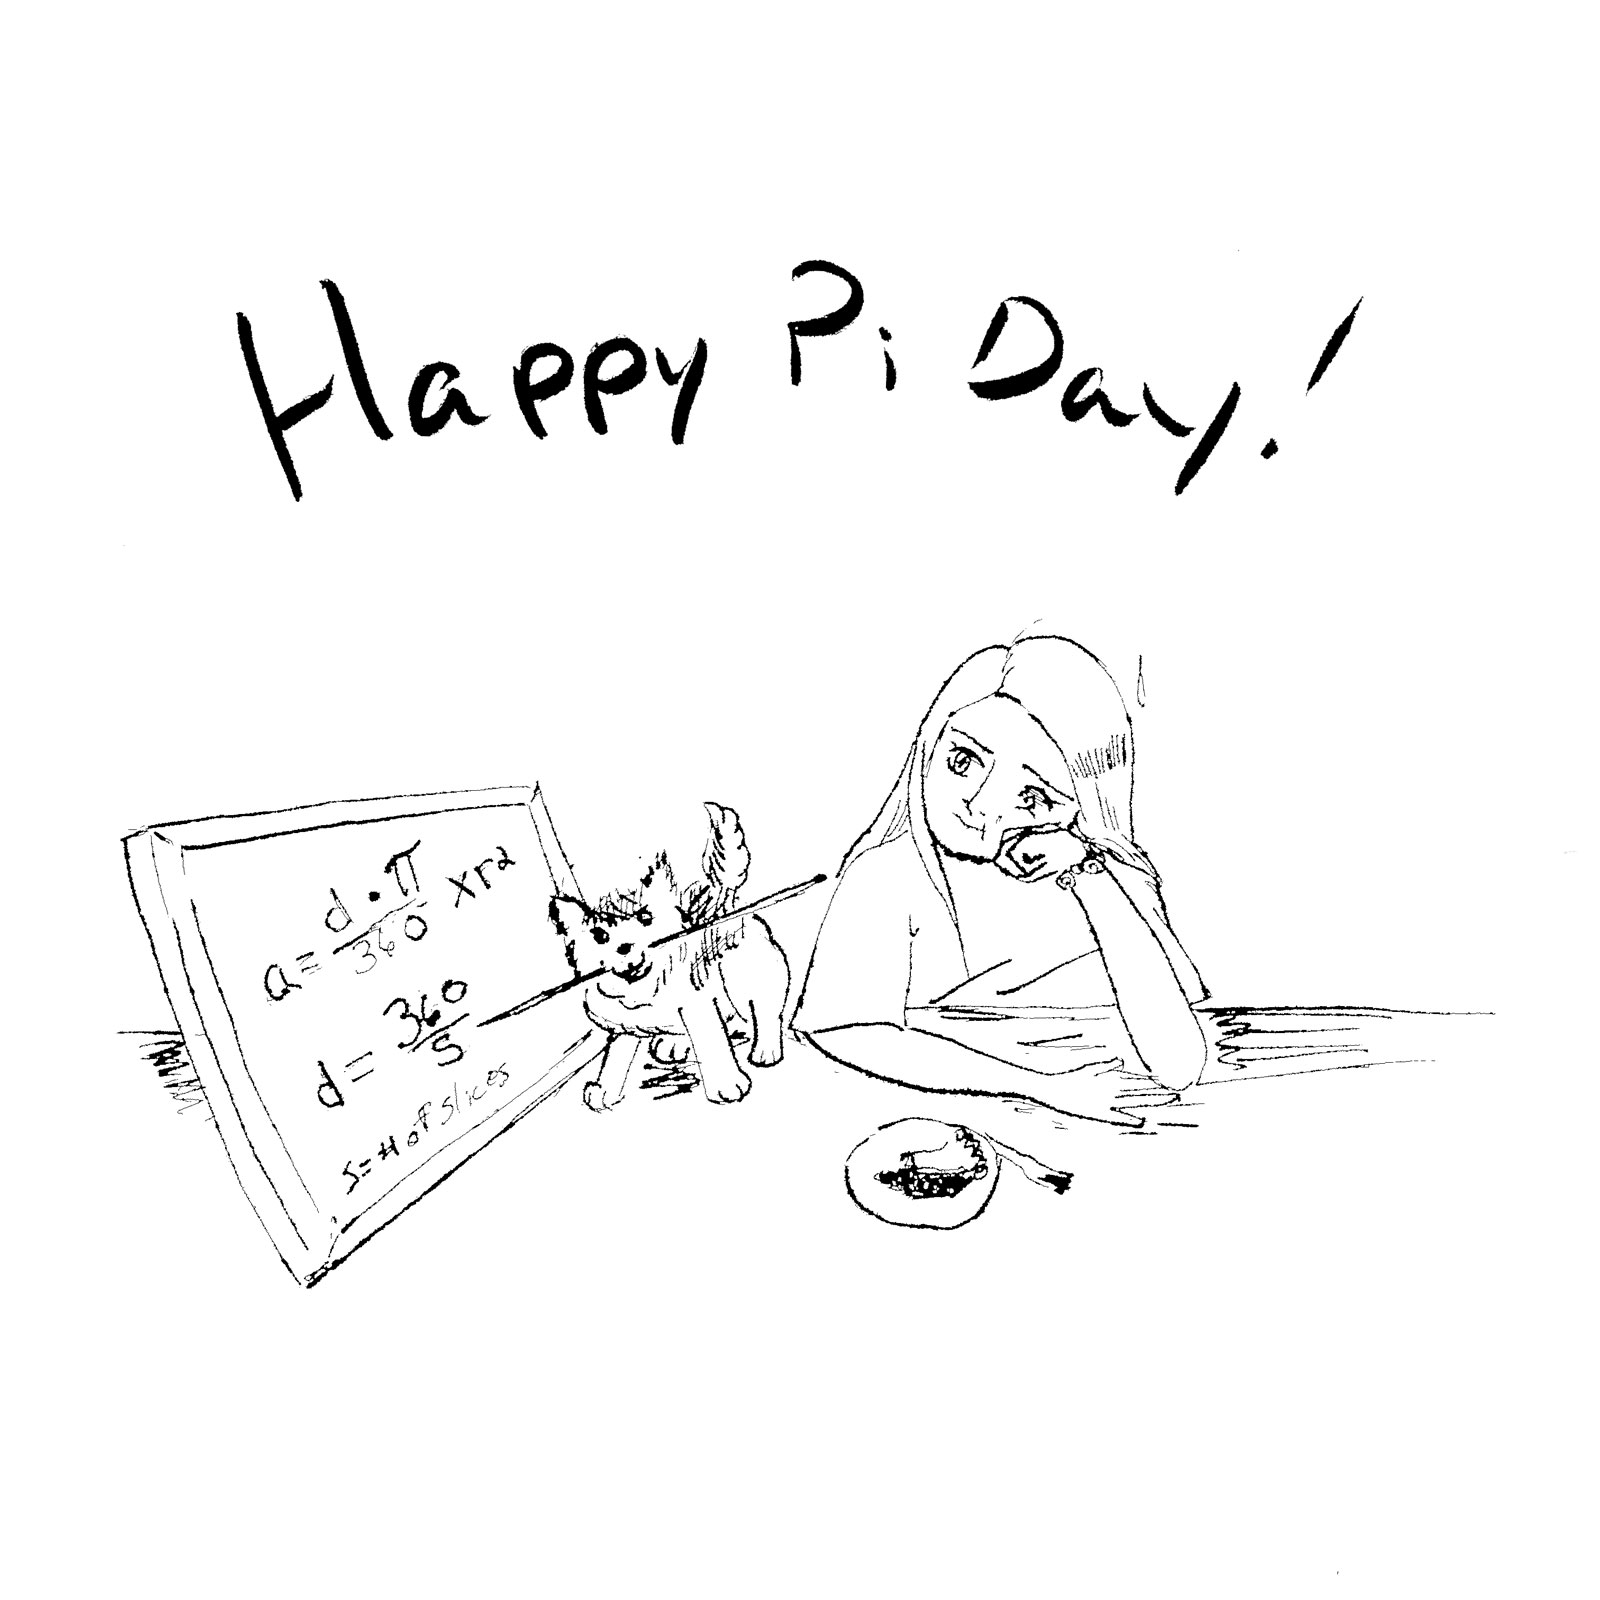 Happy Pi Day 2019